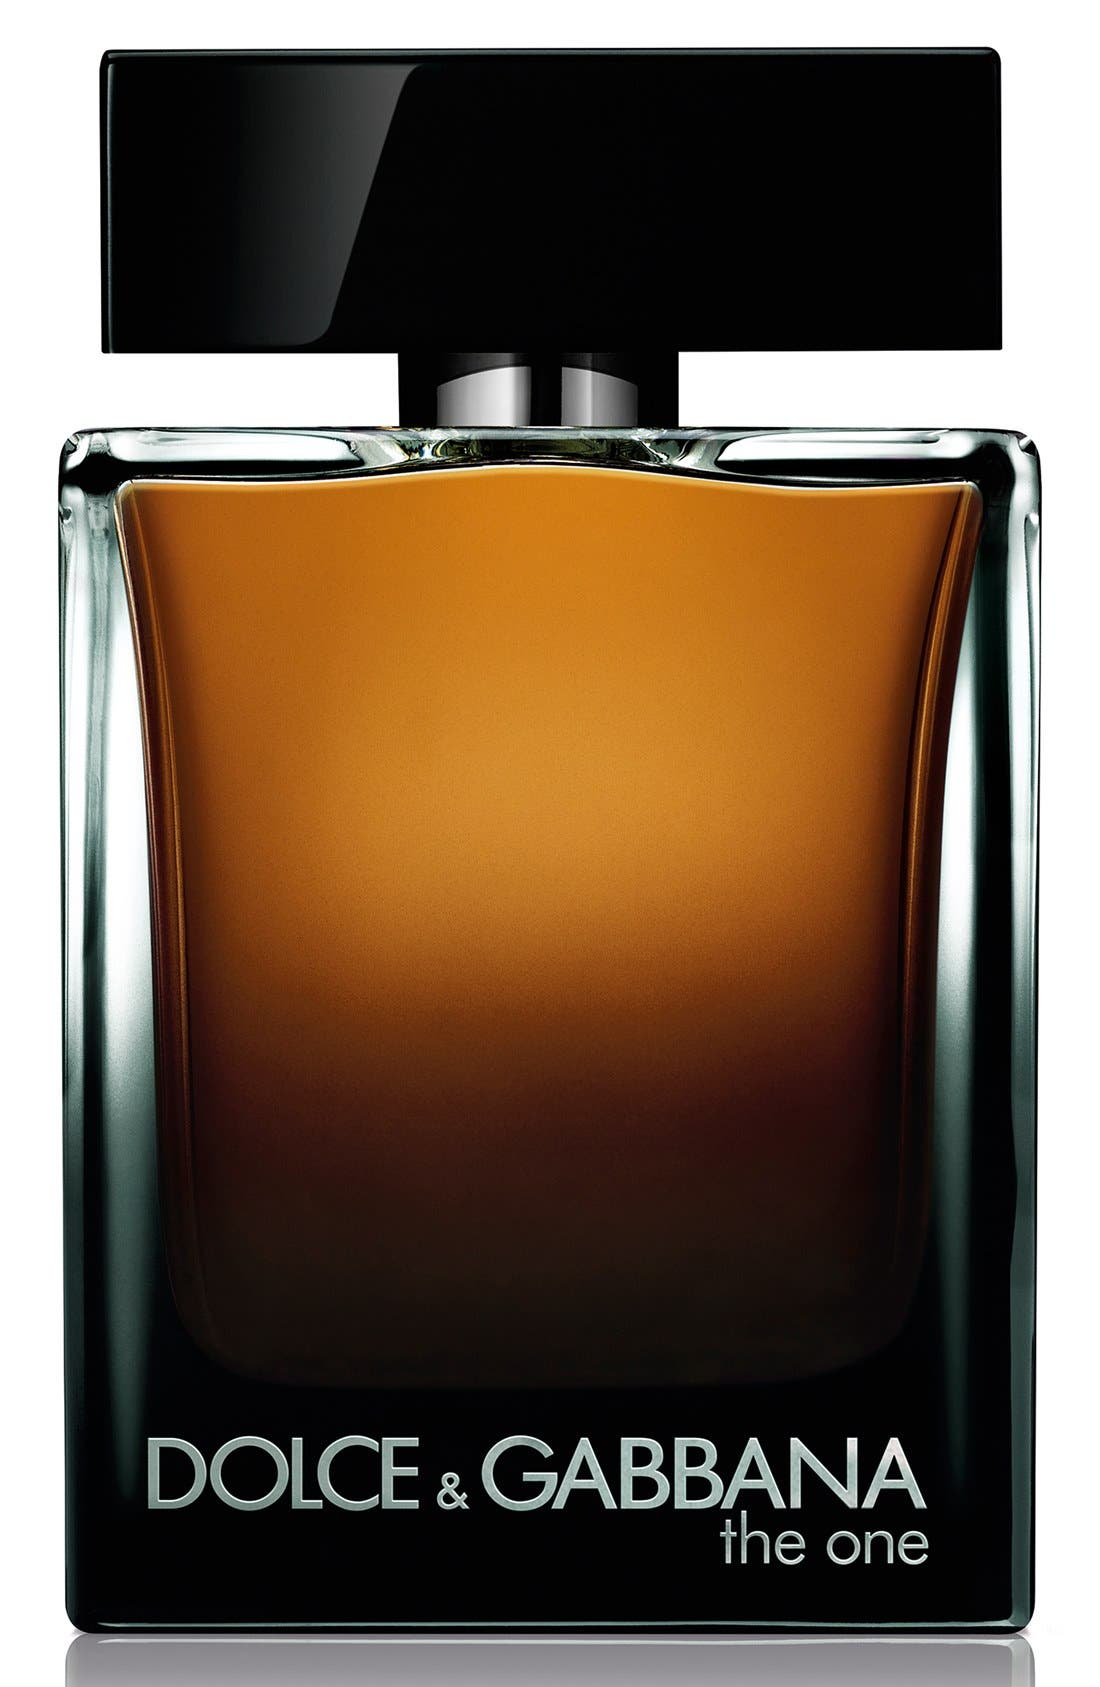 Dolce&Gabbana Beauty 'The One for Men' Eau de Parfum